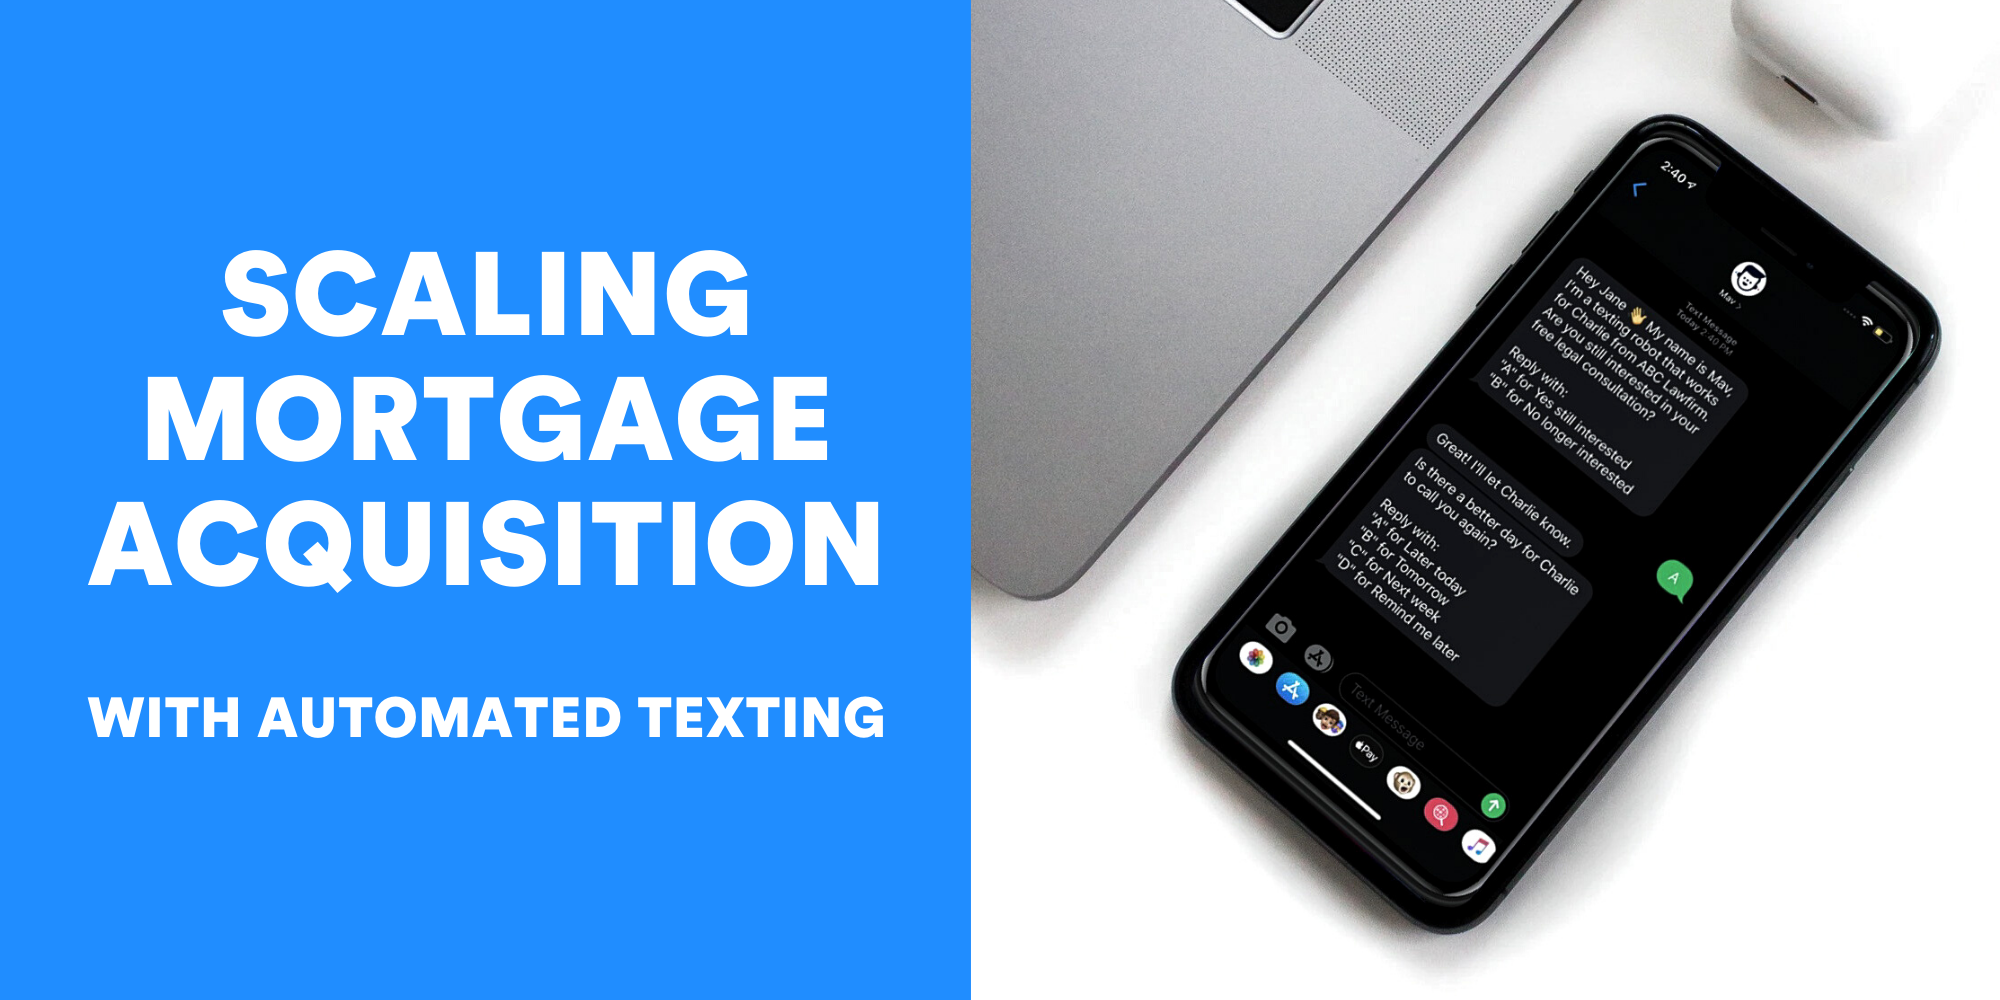 Scaling Mortgage Acquisition? Automated Texting is Your New Secret Weapon to Convert